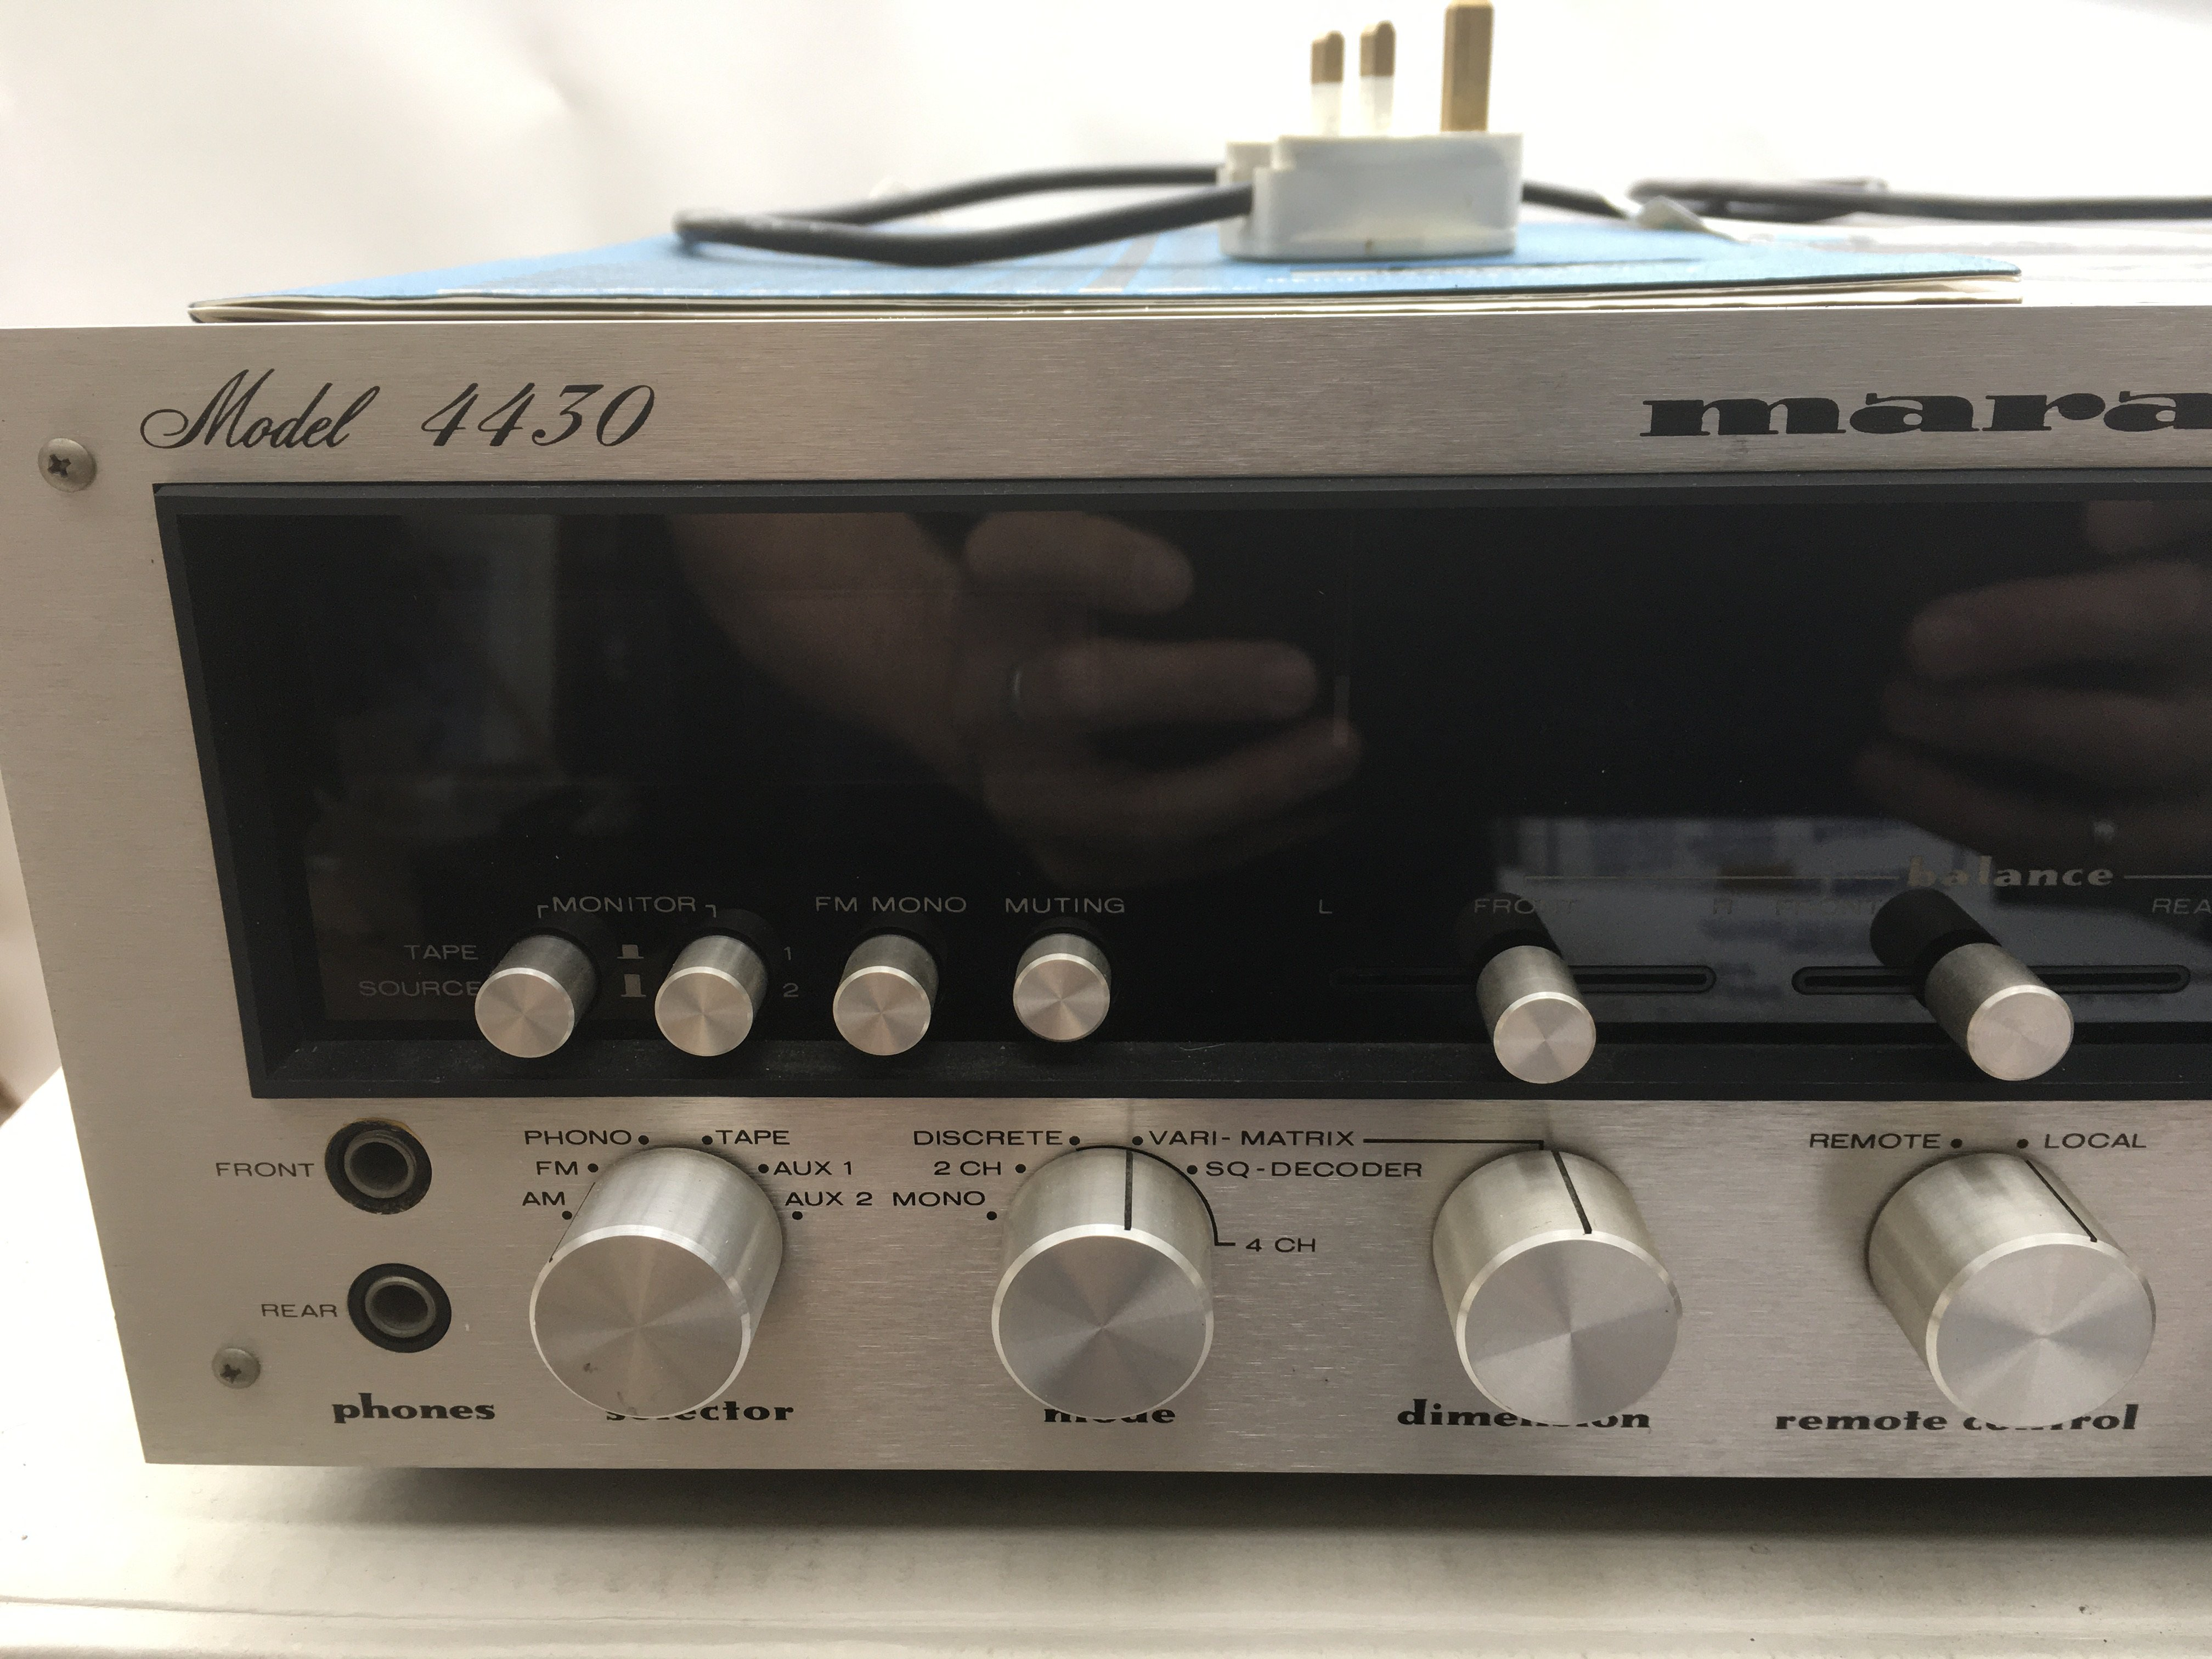 A boxed Marantz 4430 Quadradial stereo receiver wi - Image 2 of 4